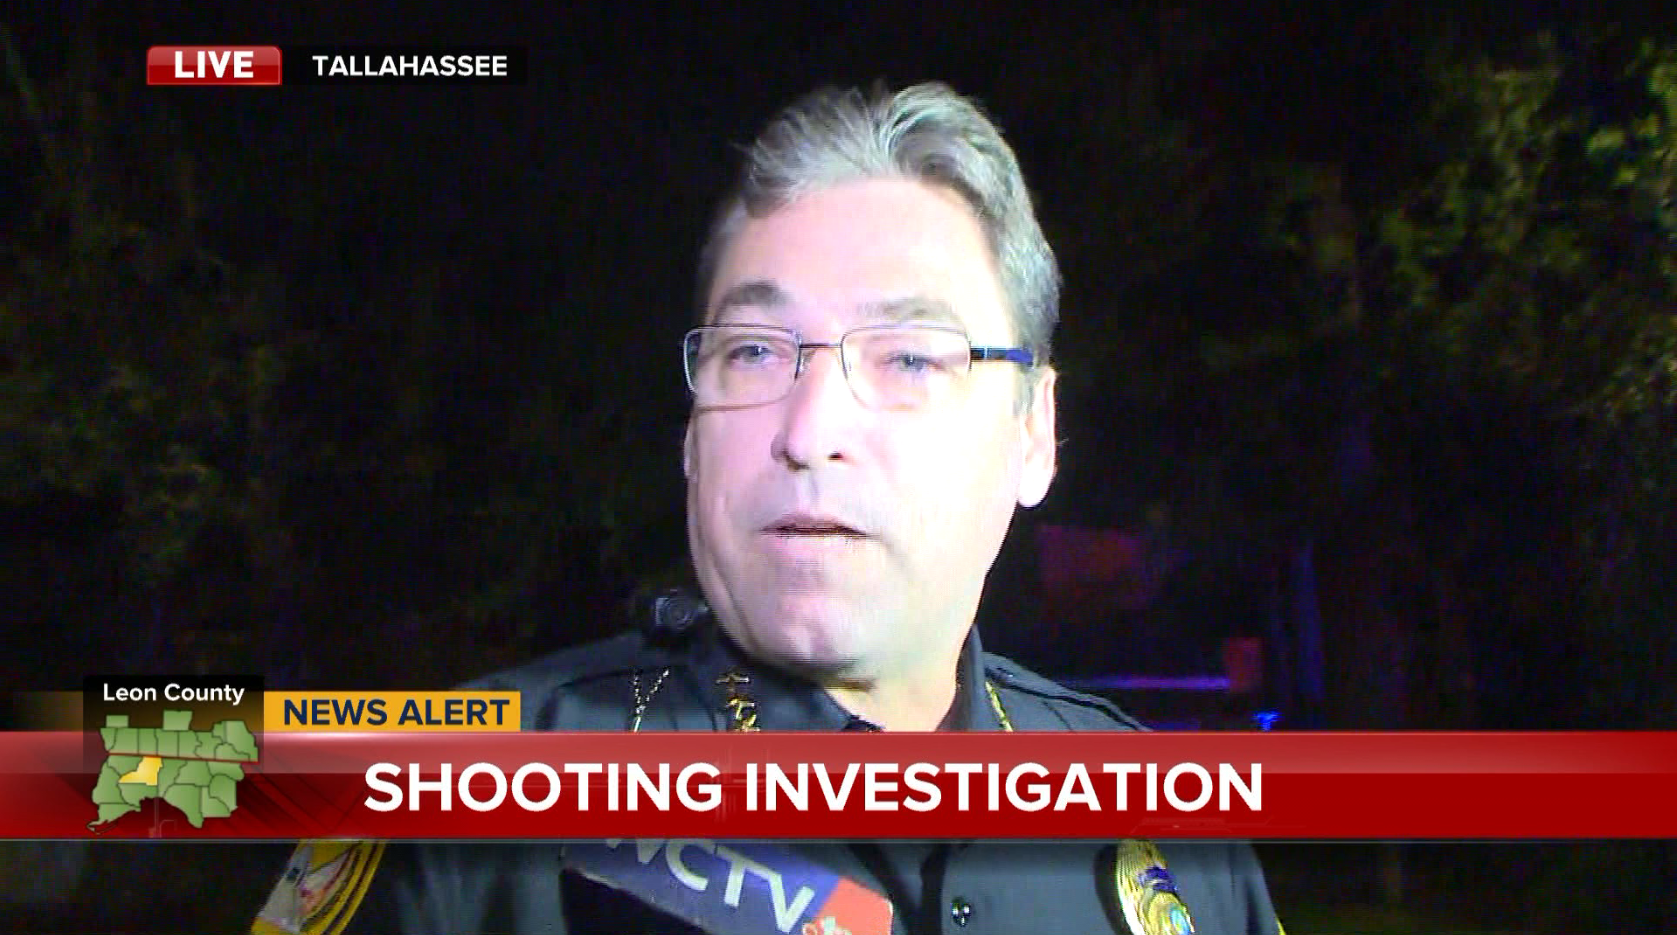 b3da845f278 TPD Chief DeLeo holds press conference following deadly shooting